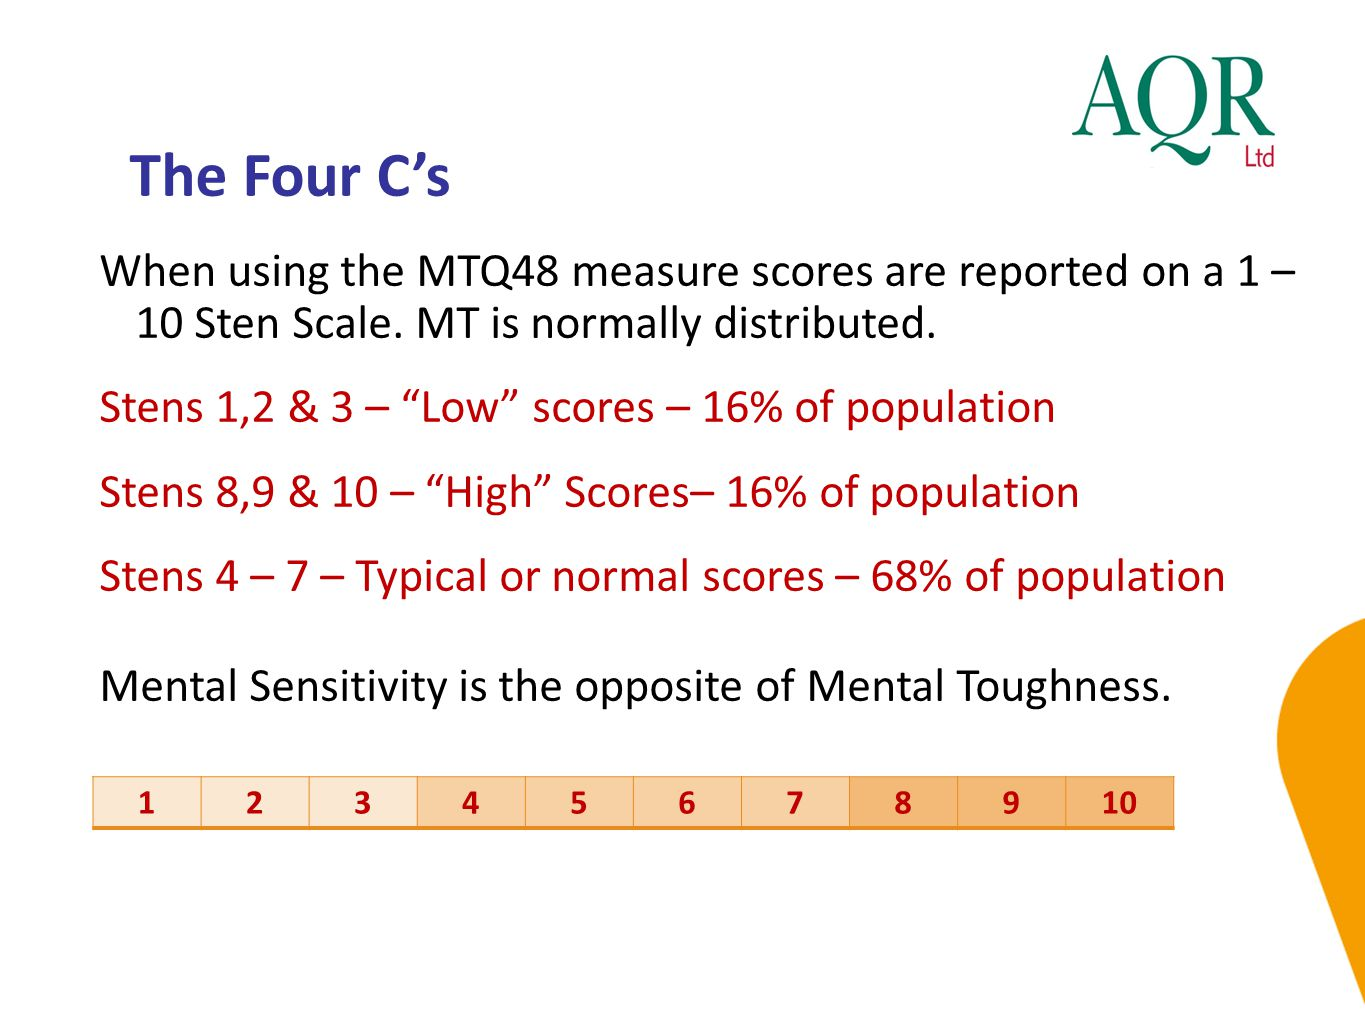 The Four C's When using the MTQ48 measure scores are reported on a 1 – 10 Sten Scale. MT is normally distributed.